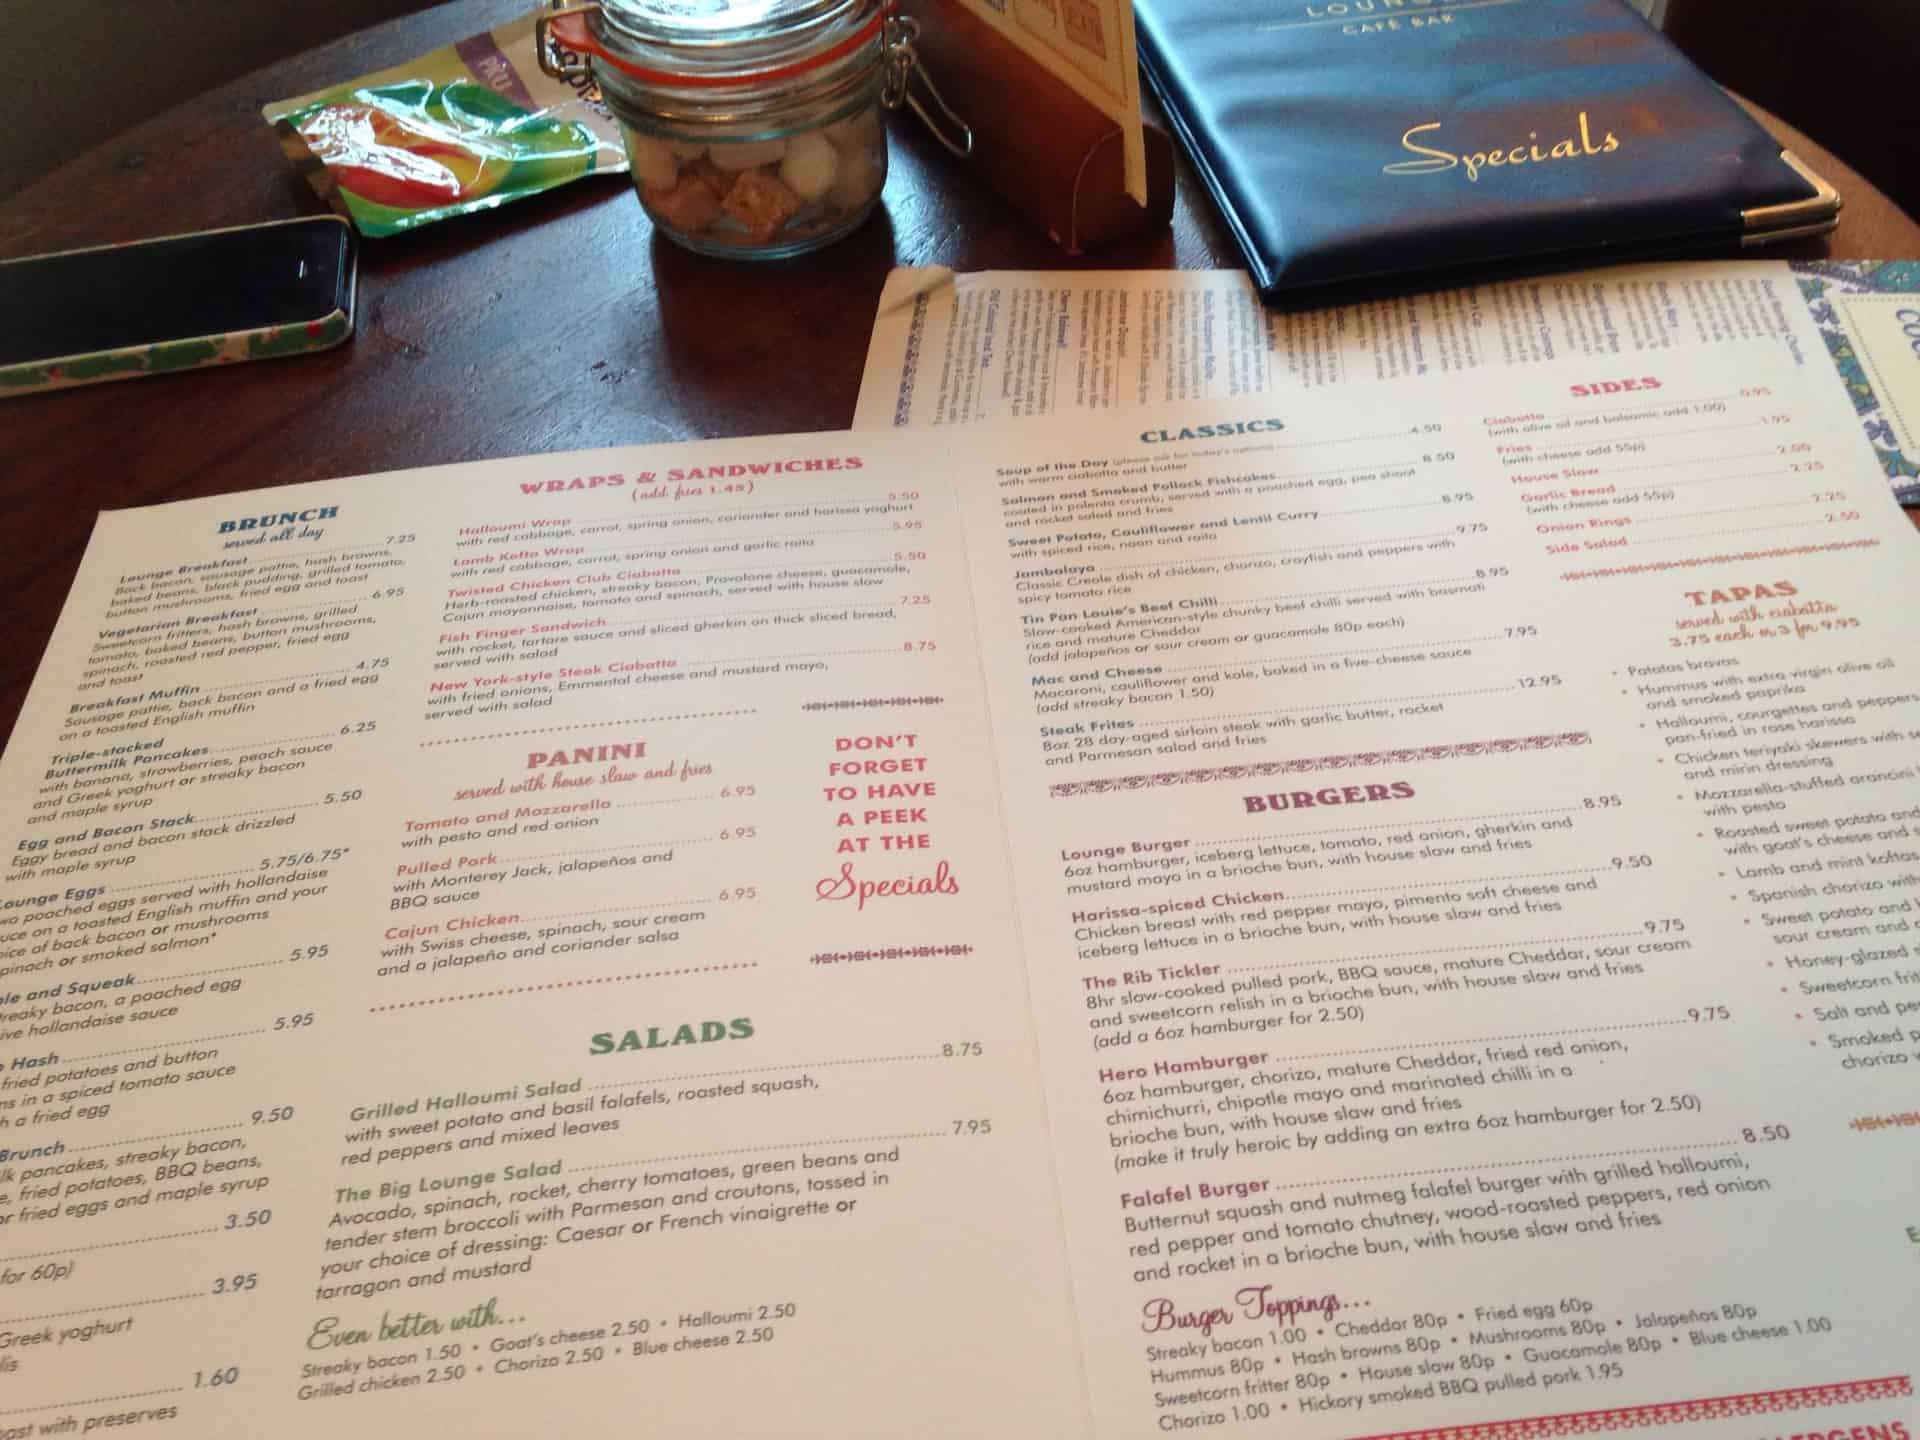 The 7 day 7 exchange challenge – The Meal Out!